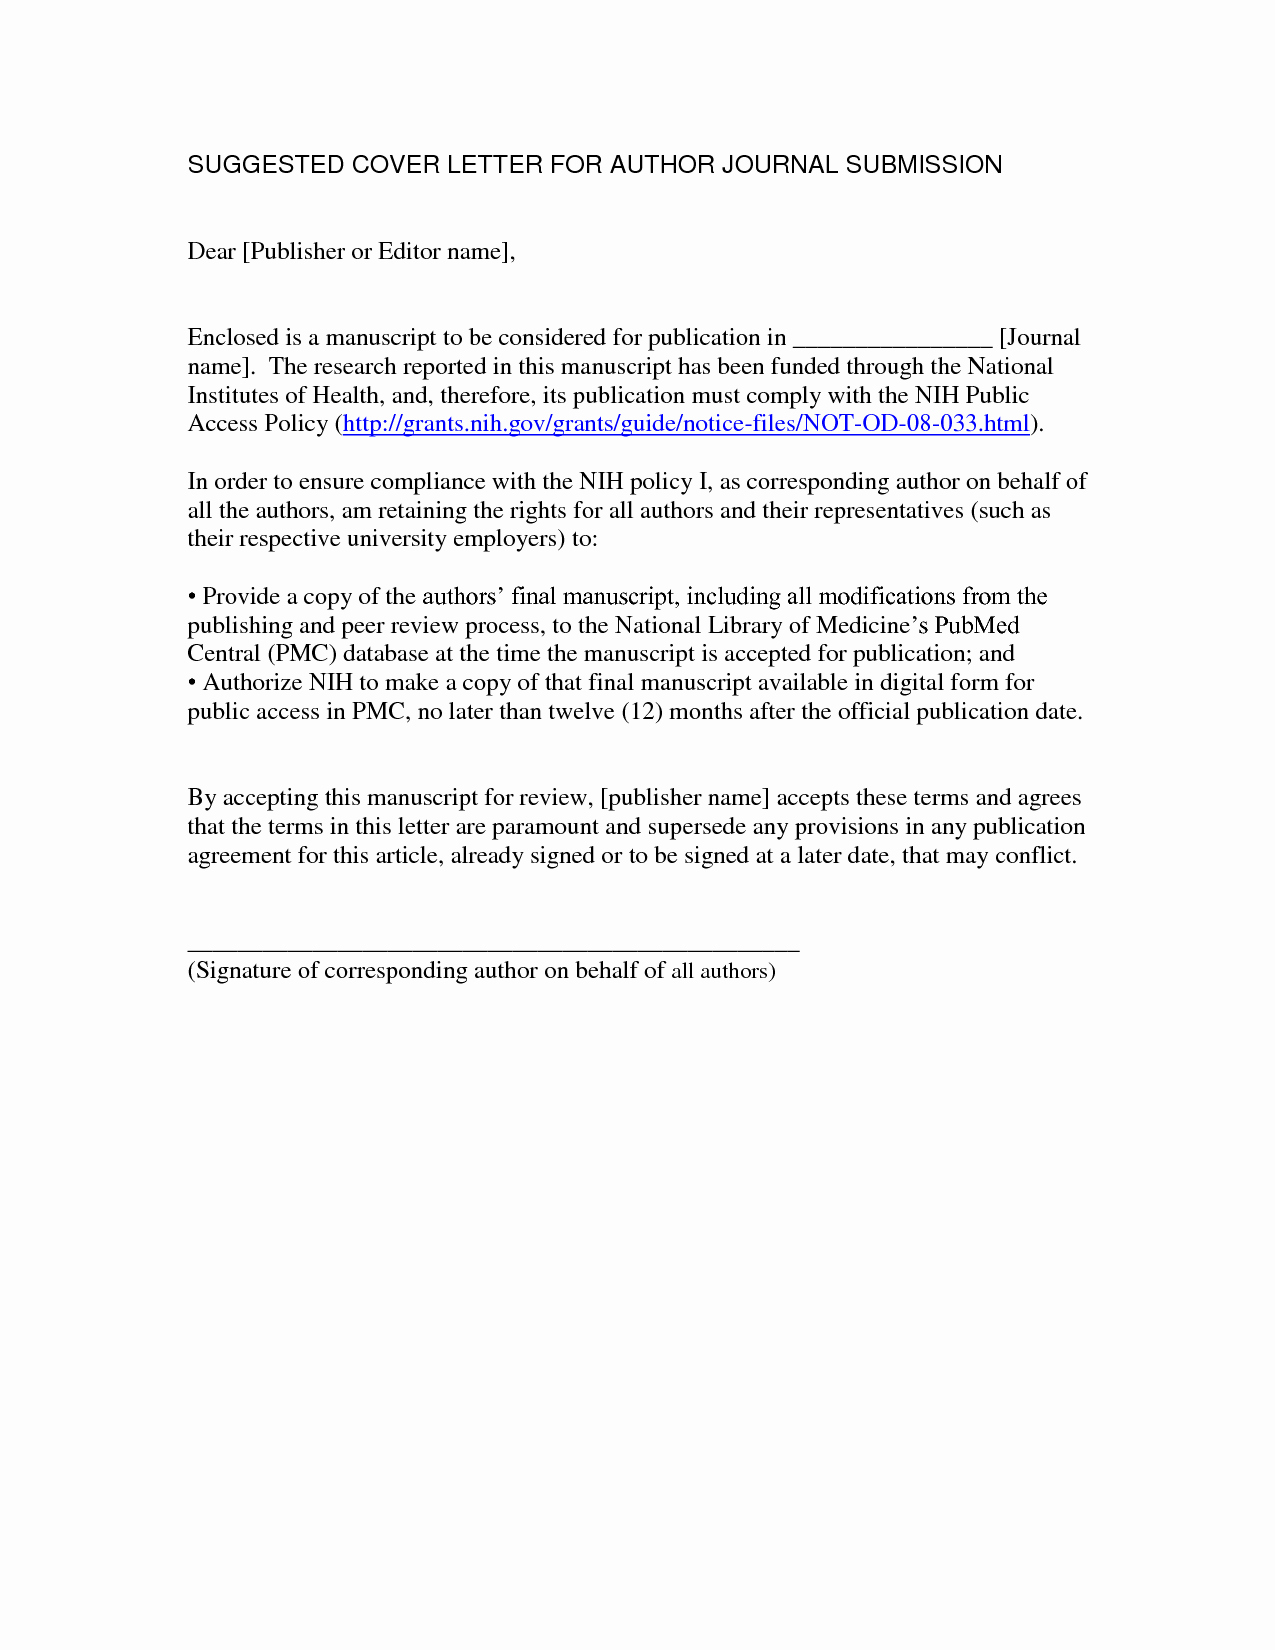 Medical Scribe Cover Letter Template Examples Letter Cover Templates